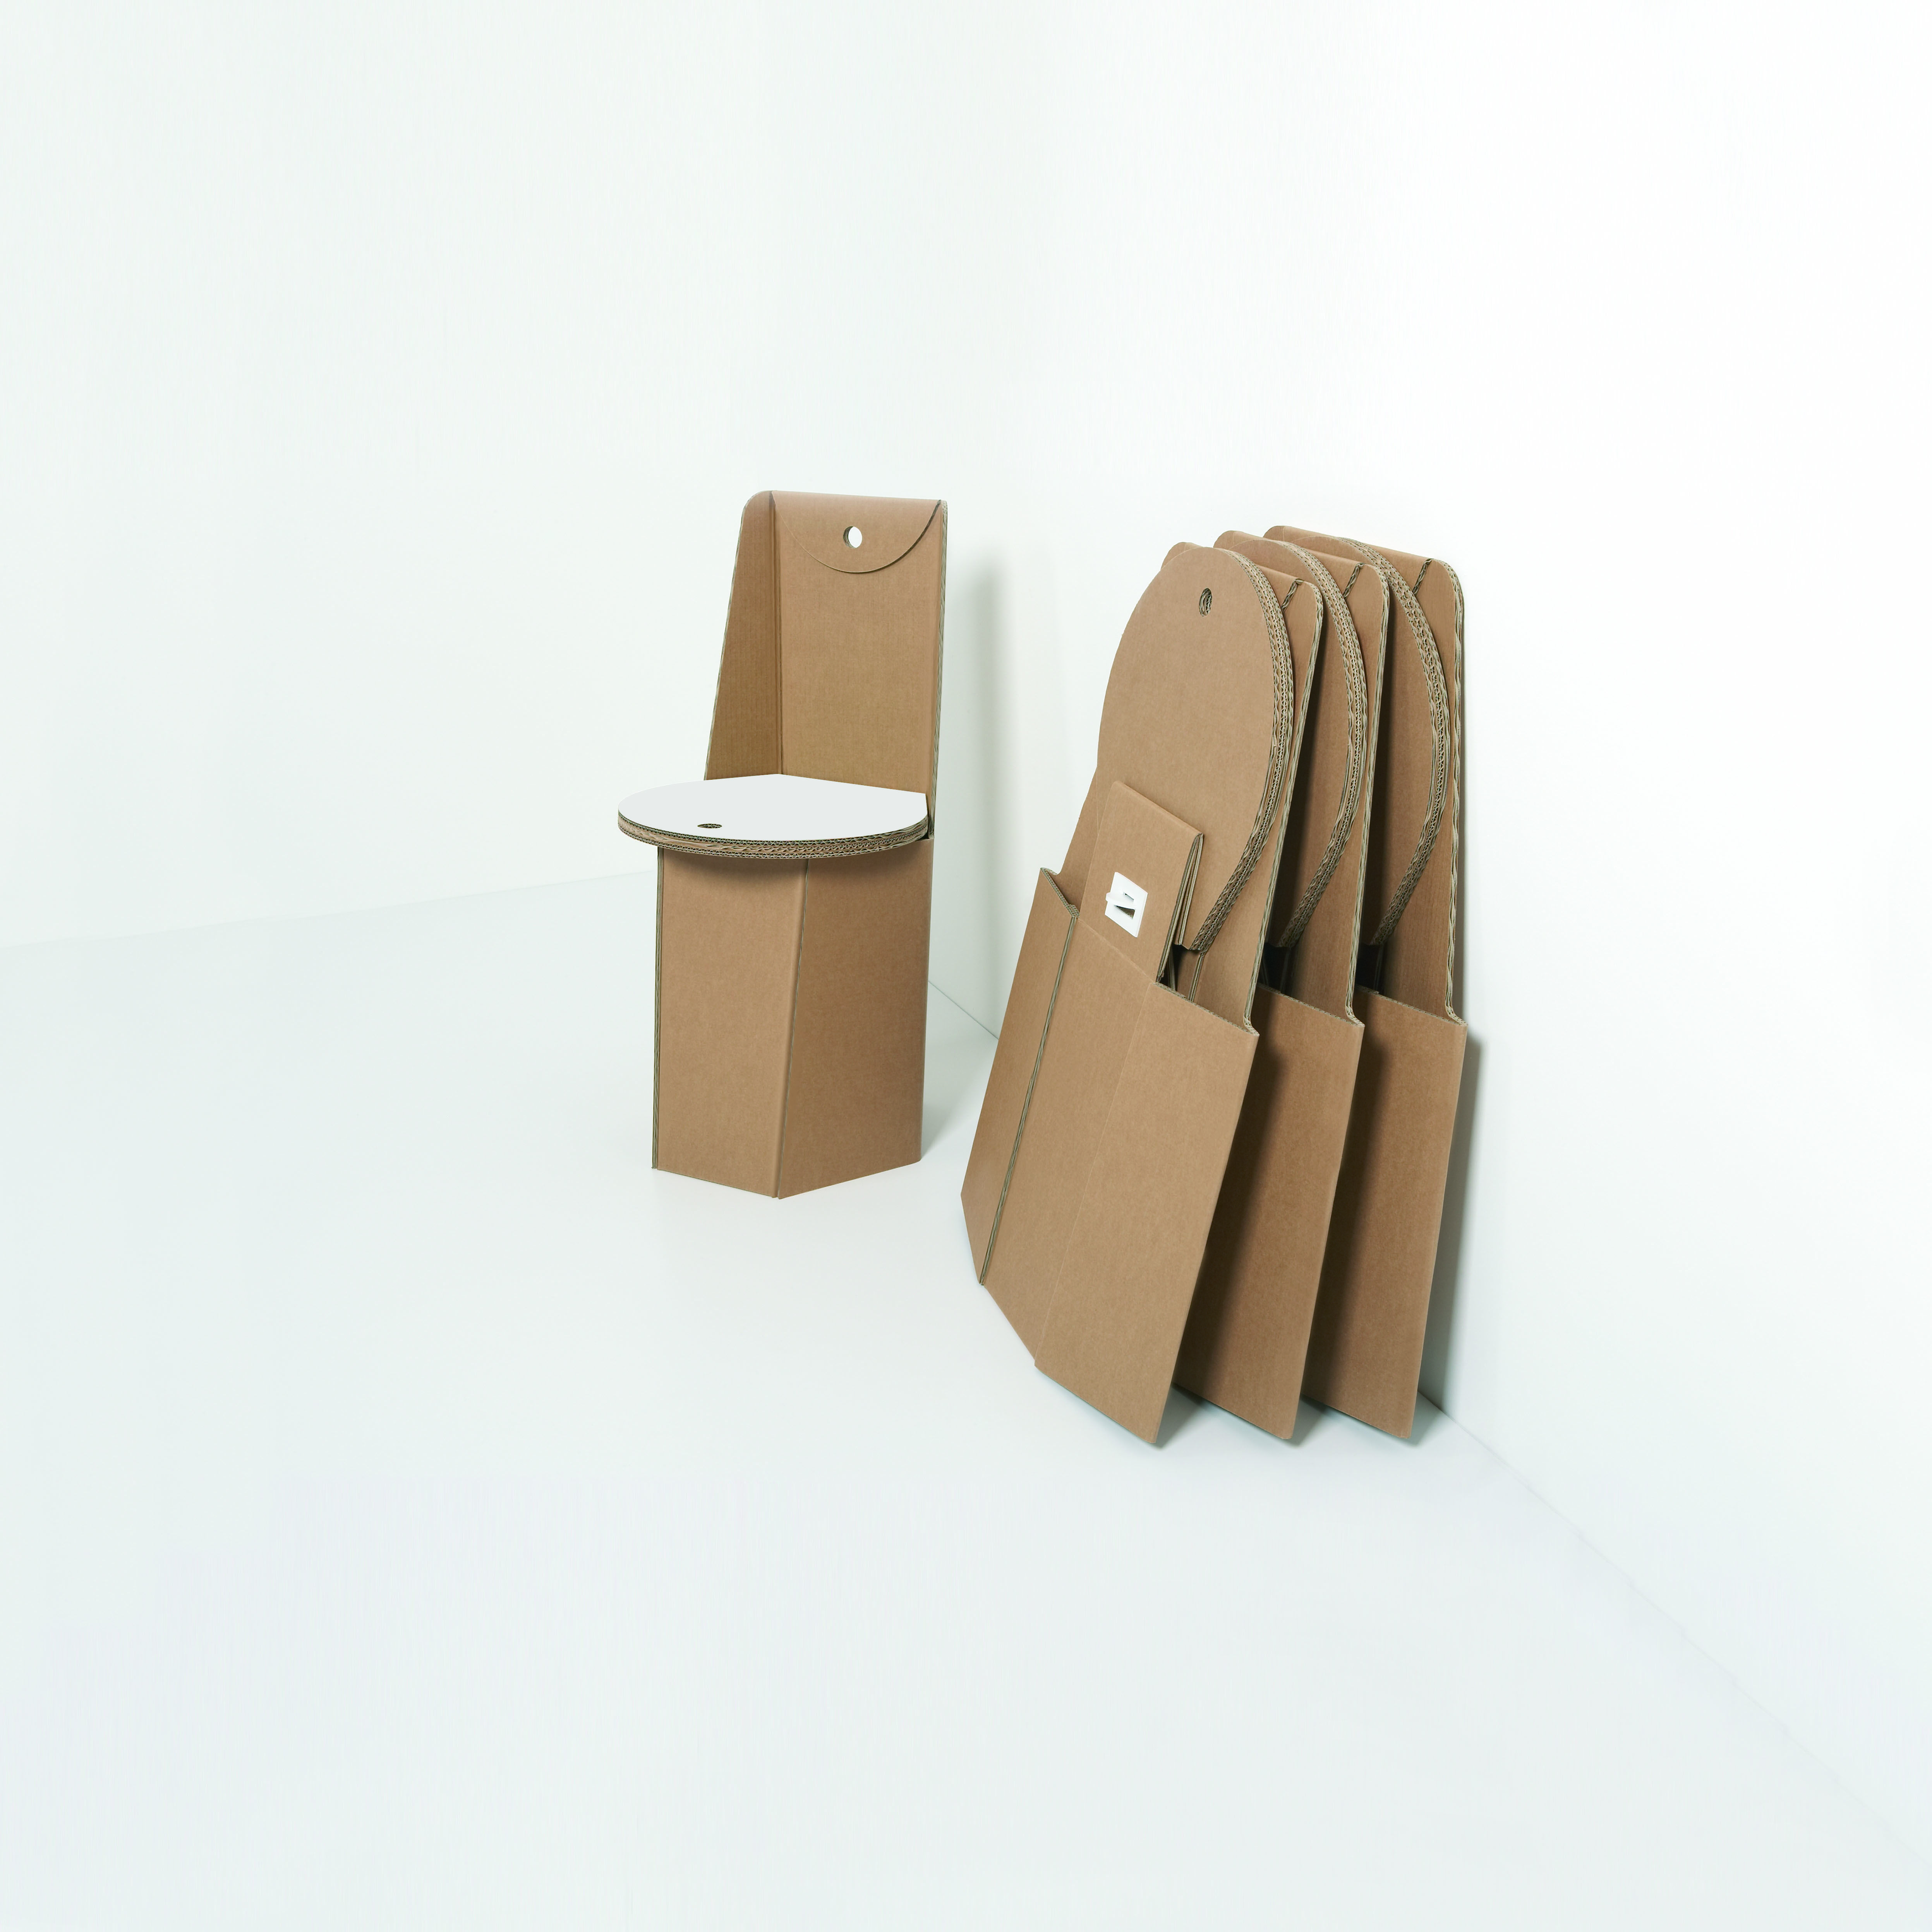 Cardboard Chair From #Kubedesign Collection   #cardboard Architectures